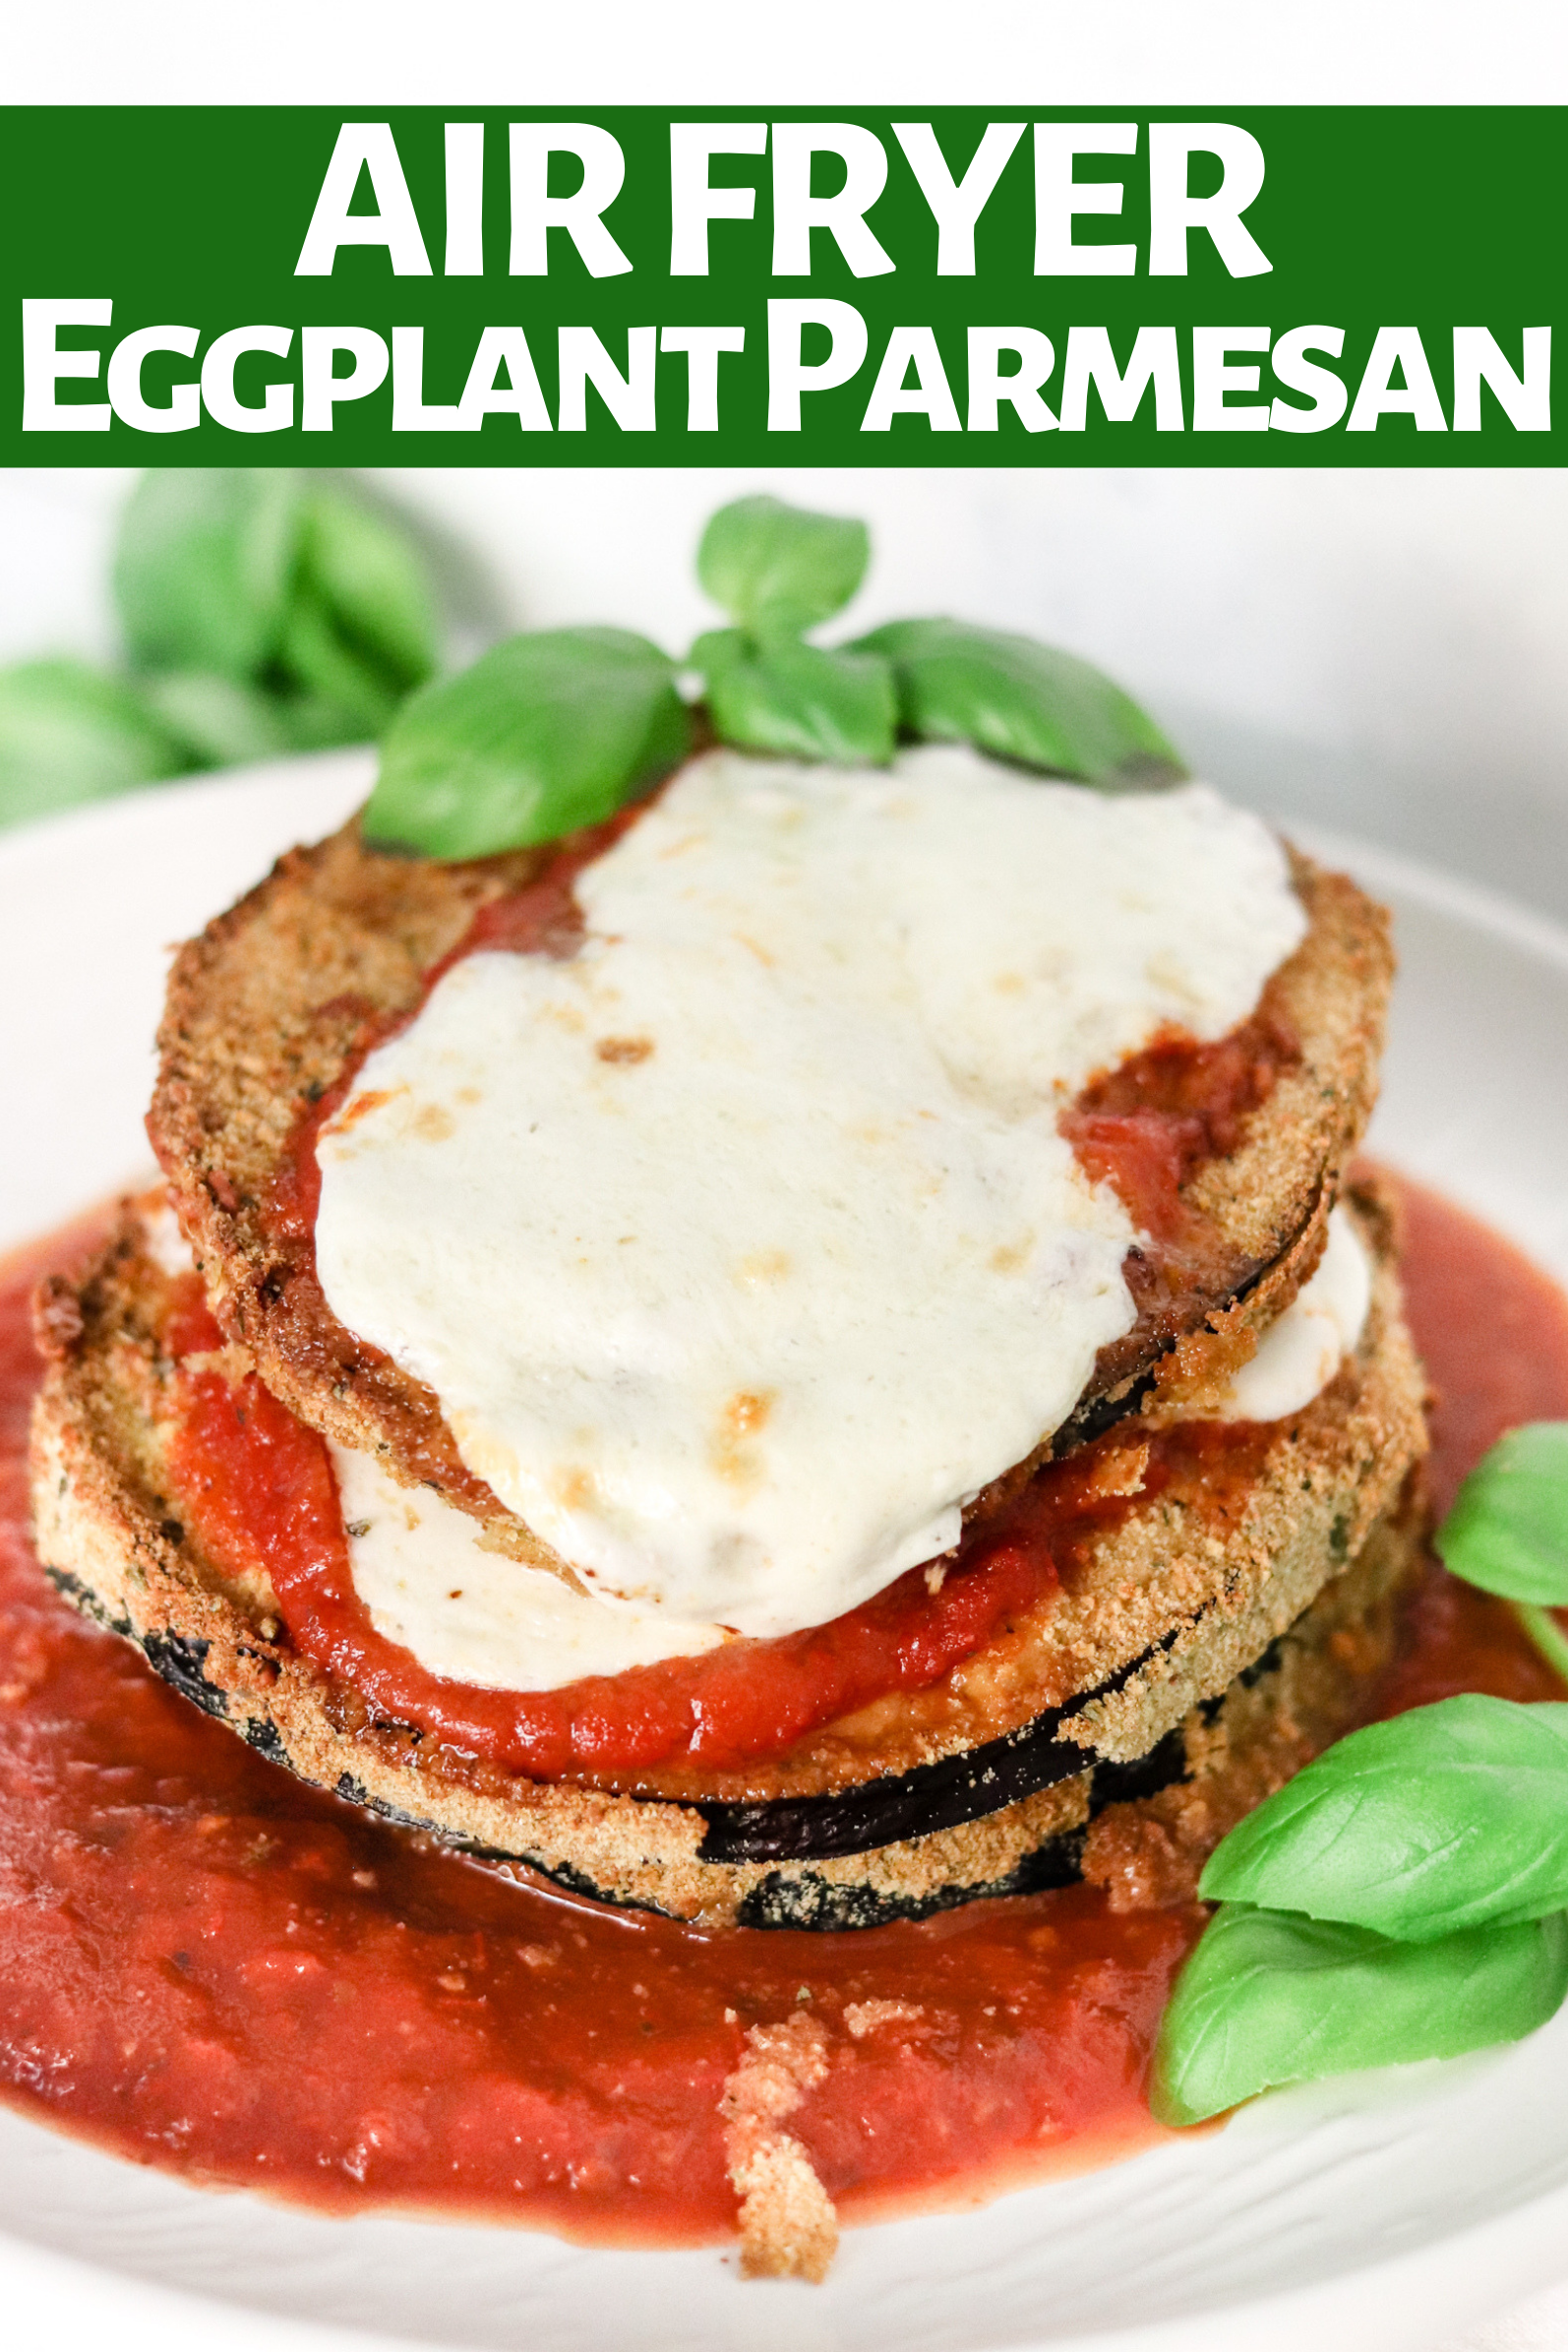 Making Eggplant Parmesan has never been easier than with